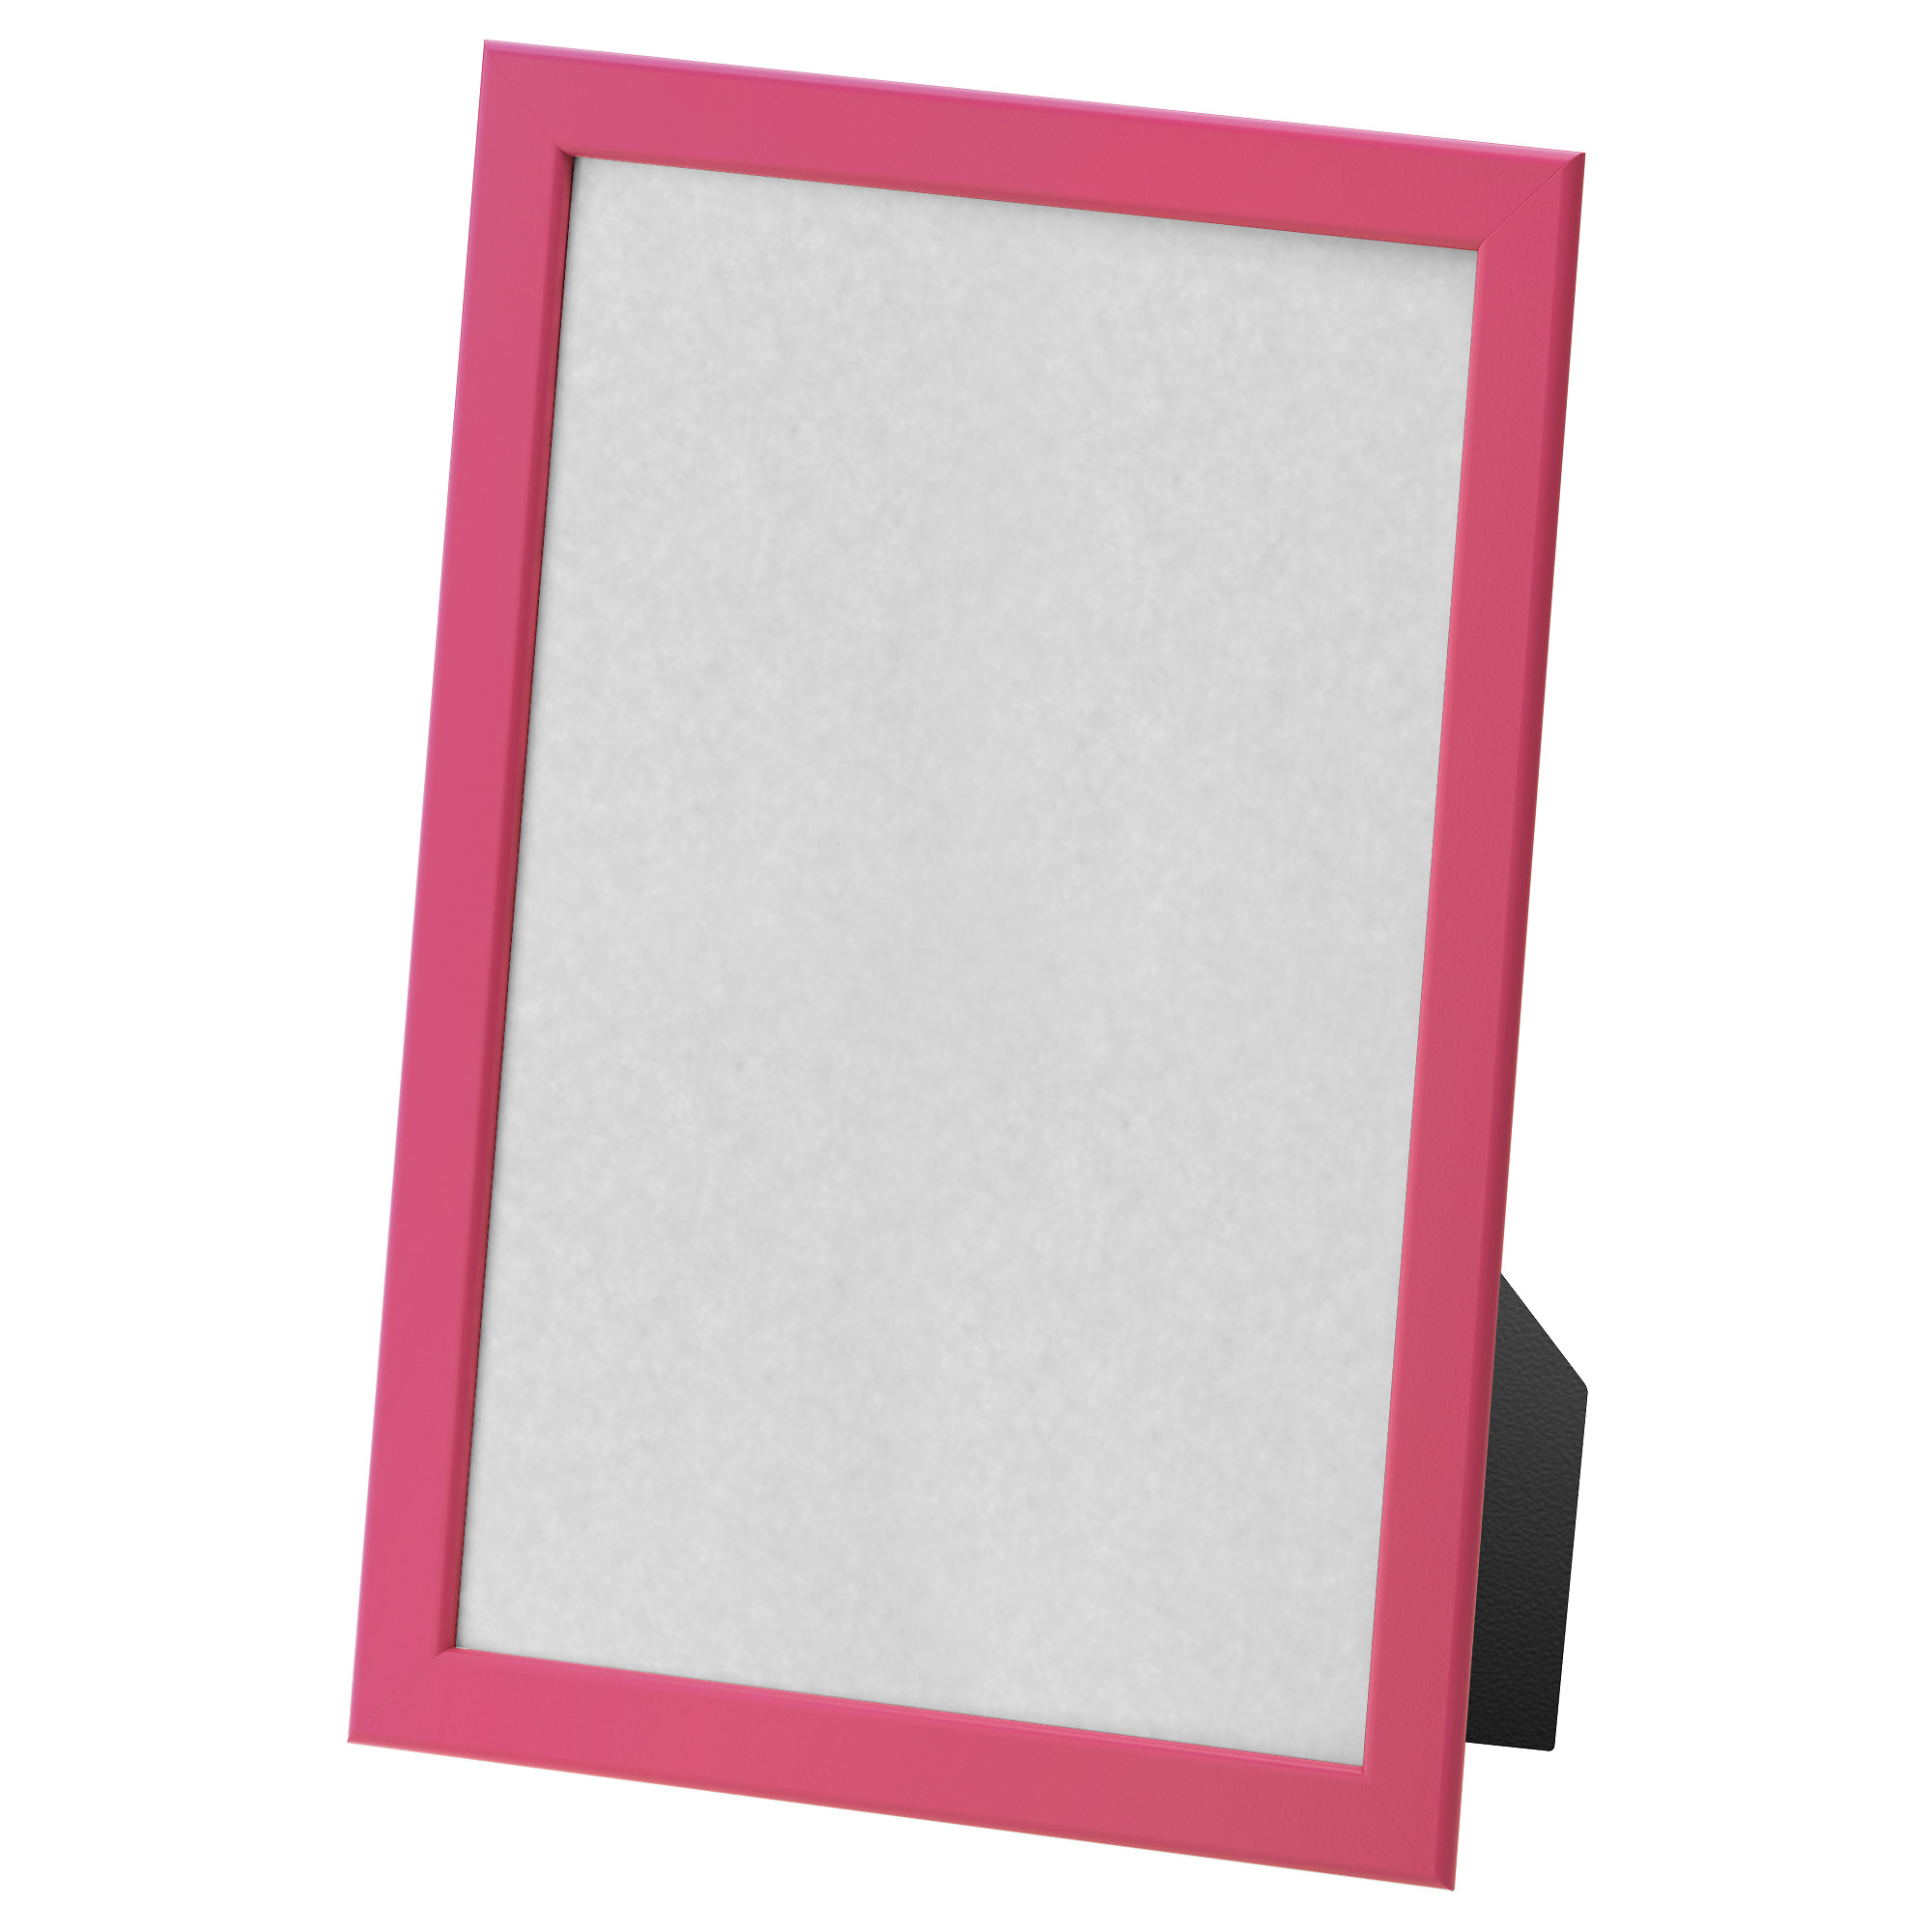 Wall decals choose an option 8x12 in 16x24 in 24x36 in - Fiskbo Frame Dark Pink Frame Height 12 Picture Width